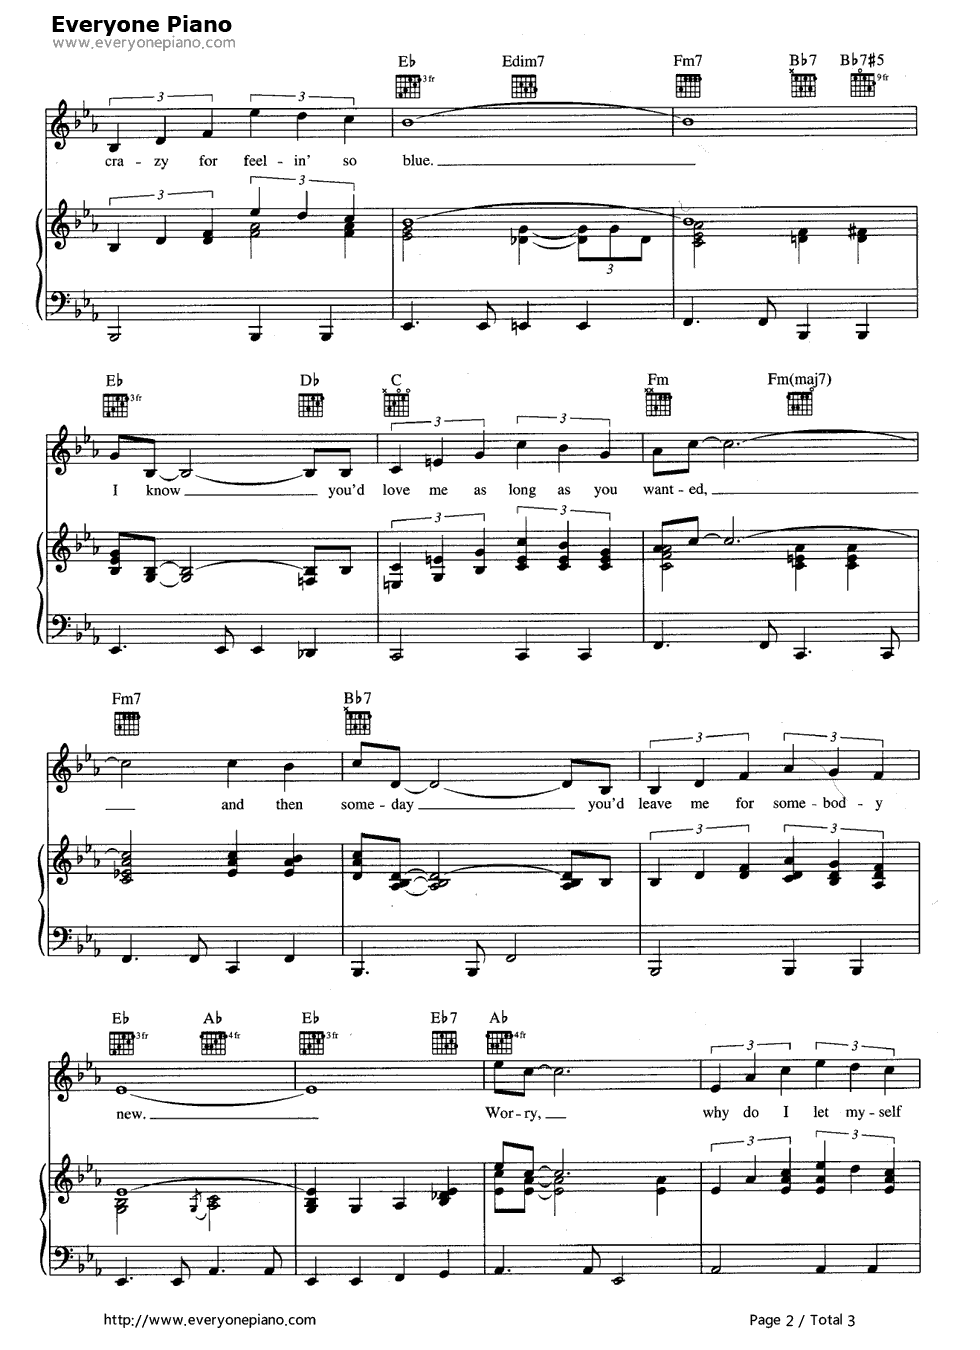 Crazy patsy cline stave preview 2 free piano sheet music piano listen now print sheet crazy patsy cline stave preview 2 hexwebz Image collections